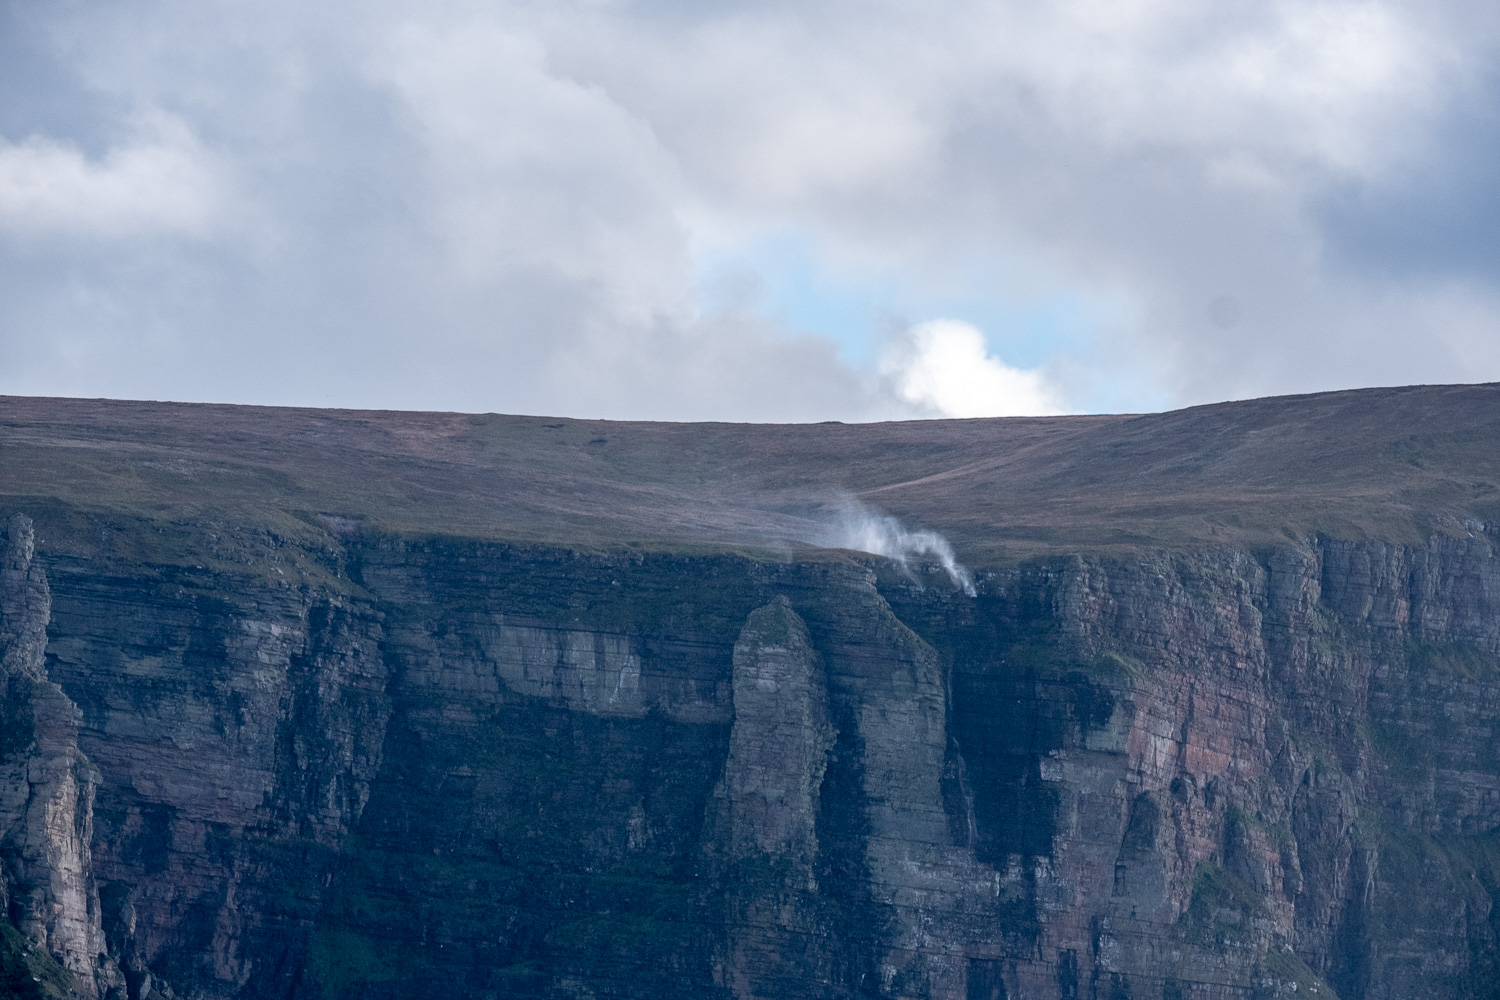 White smoky patch is not smoke but a waterfall, which with Force 8 gale winds is being blown in reverse back up the waterfall